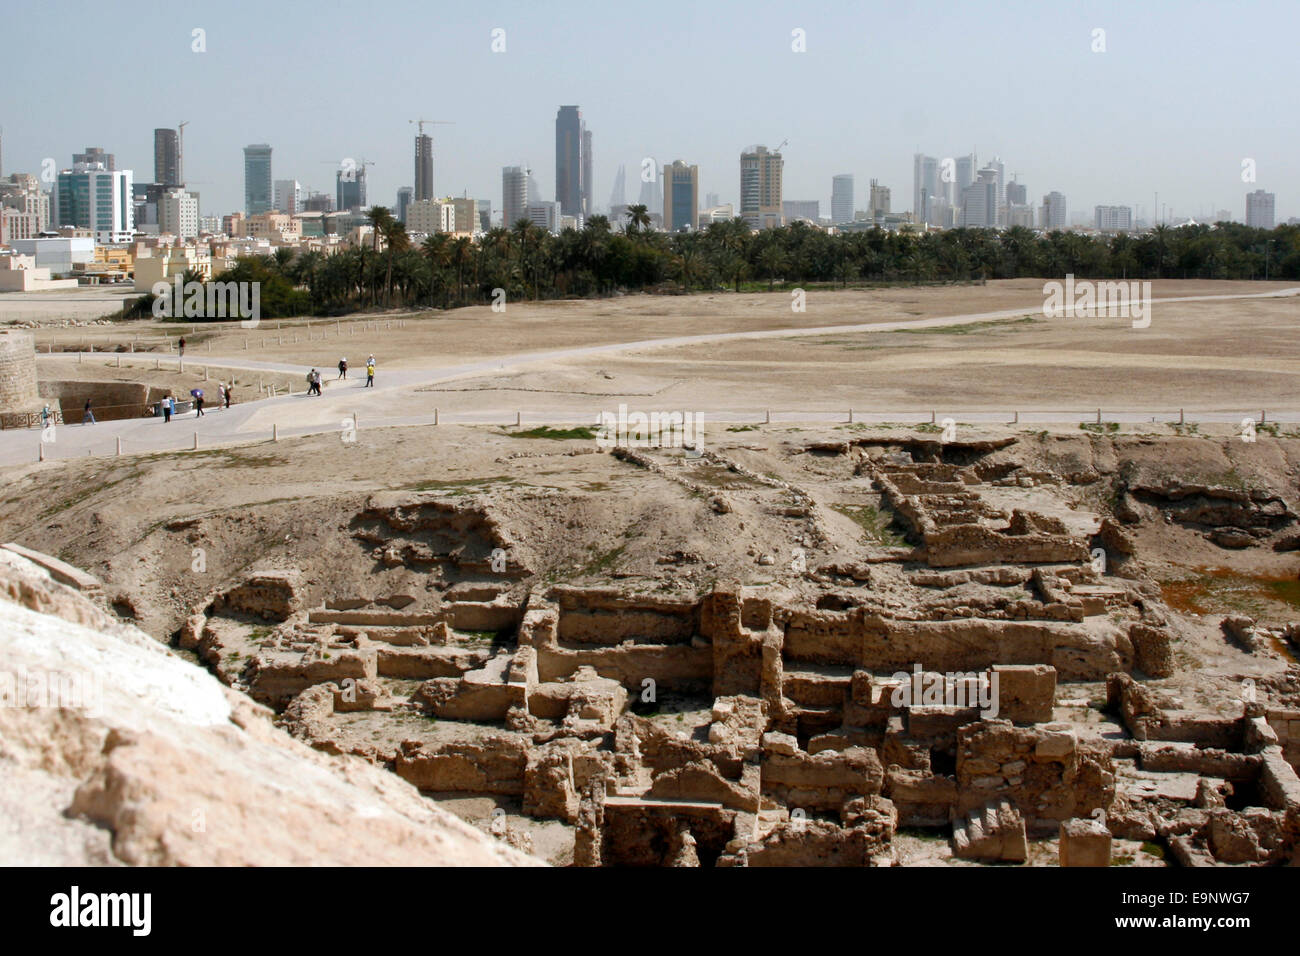 The ruins of Qala'at Bahrain, also known as the Portuguese Fort, with the towers of Manama, Bahrain in the background - Stock Image